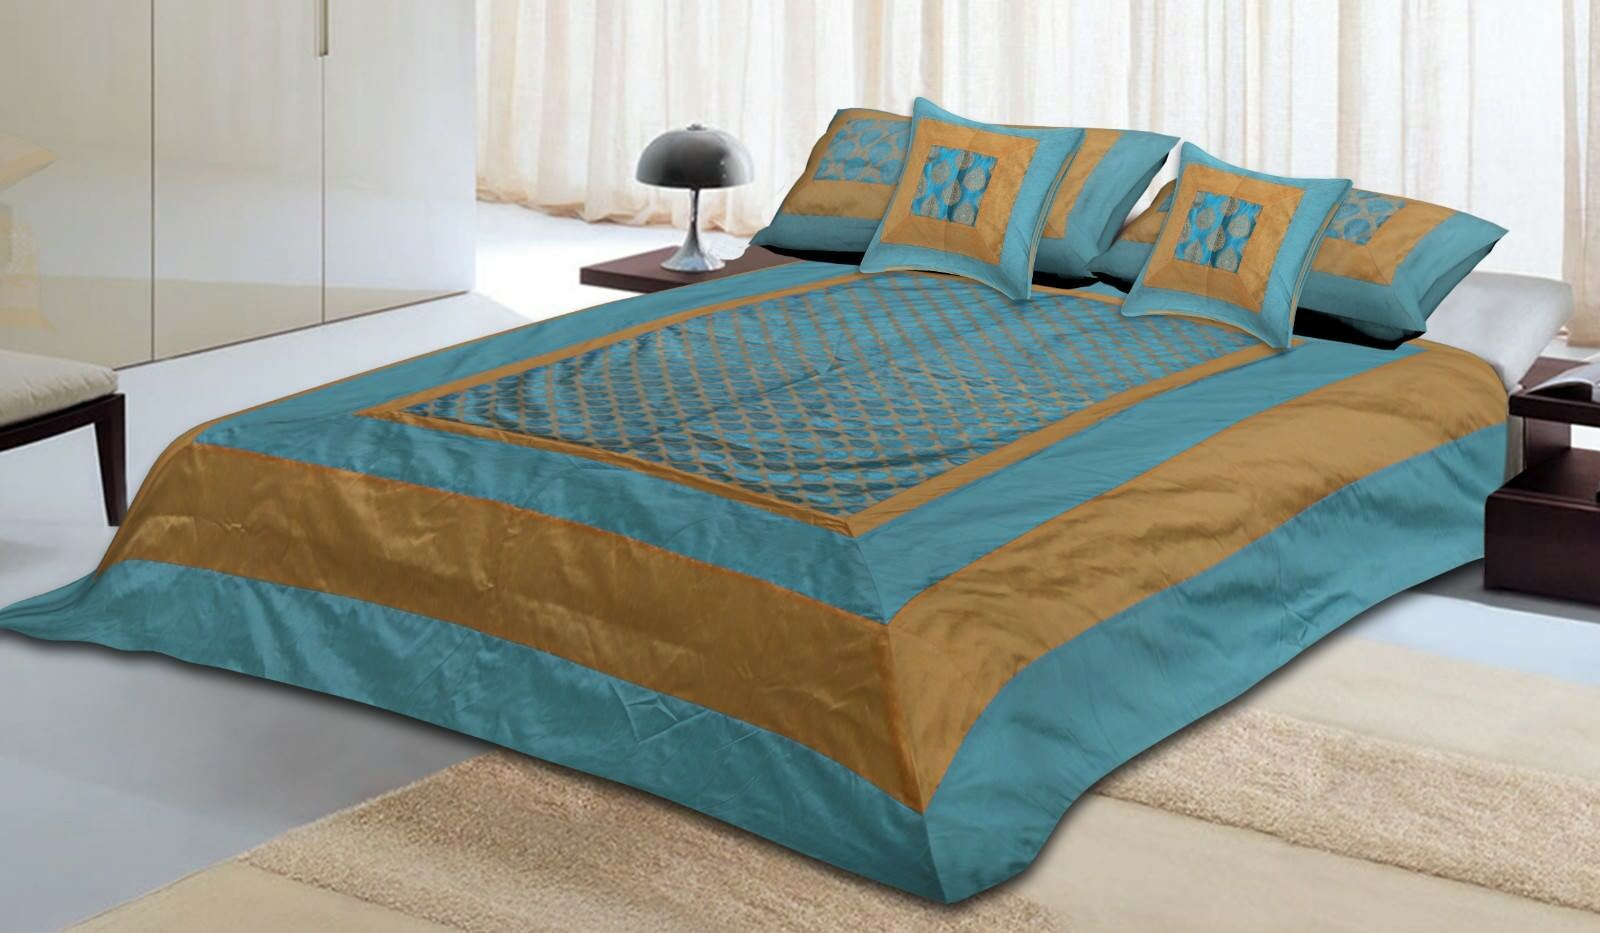 Brocade Traditional Embroidery Work Bedspread Bed Set Bed Cover Bedding